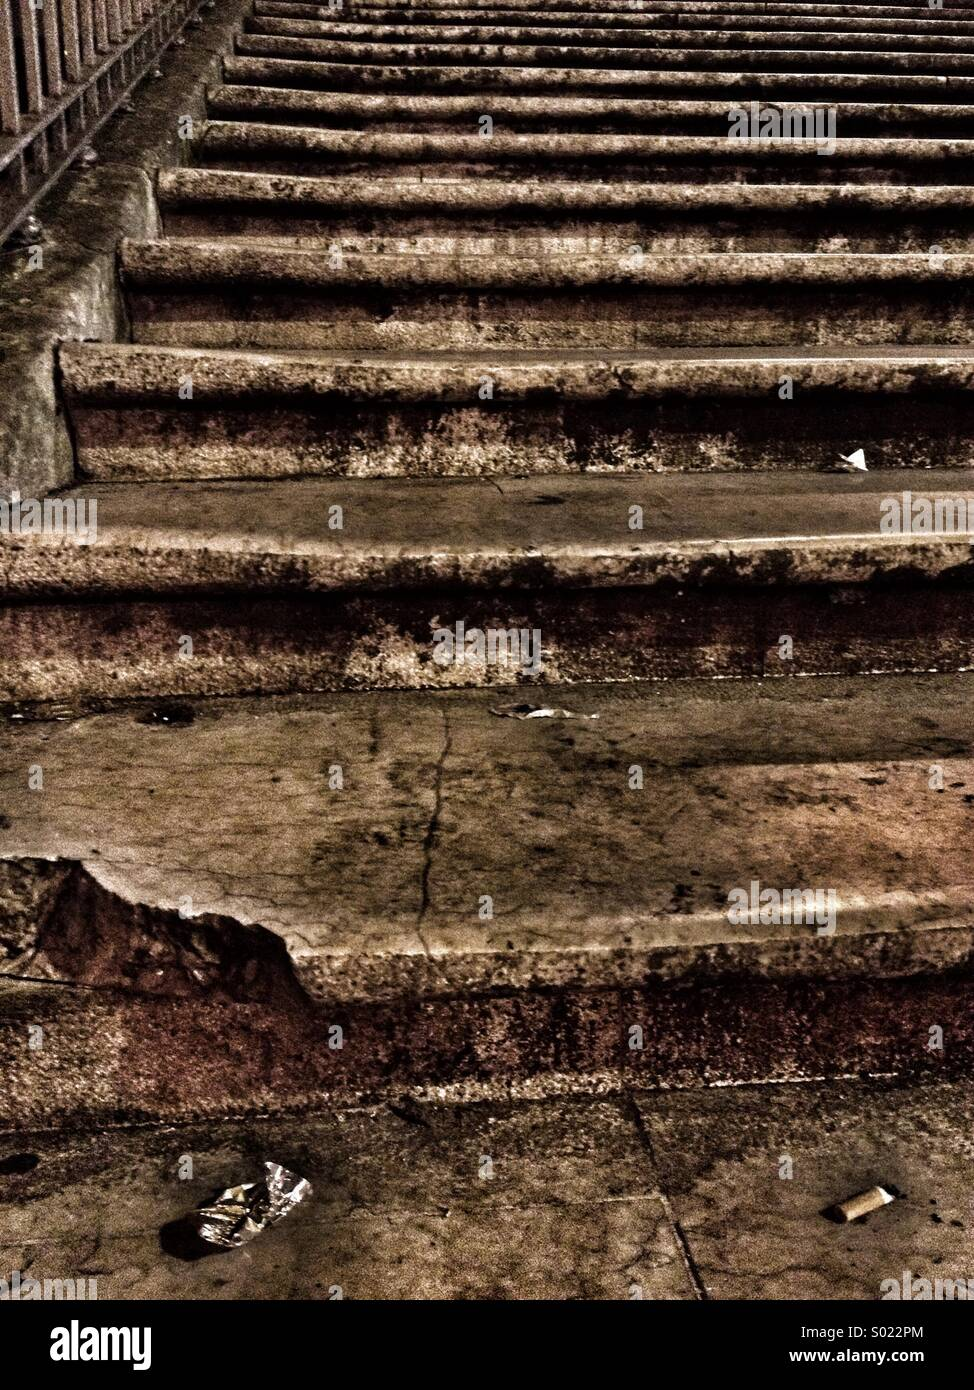 Worn staircase - Stock Image